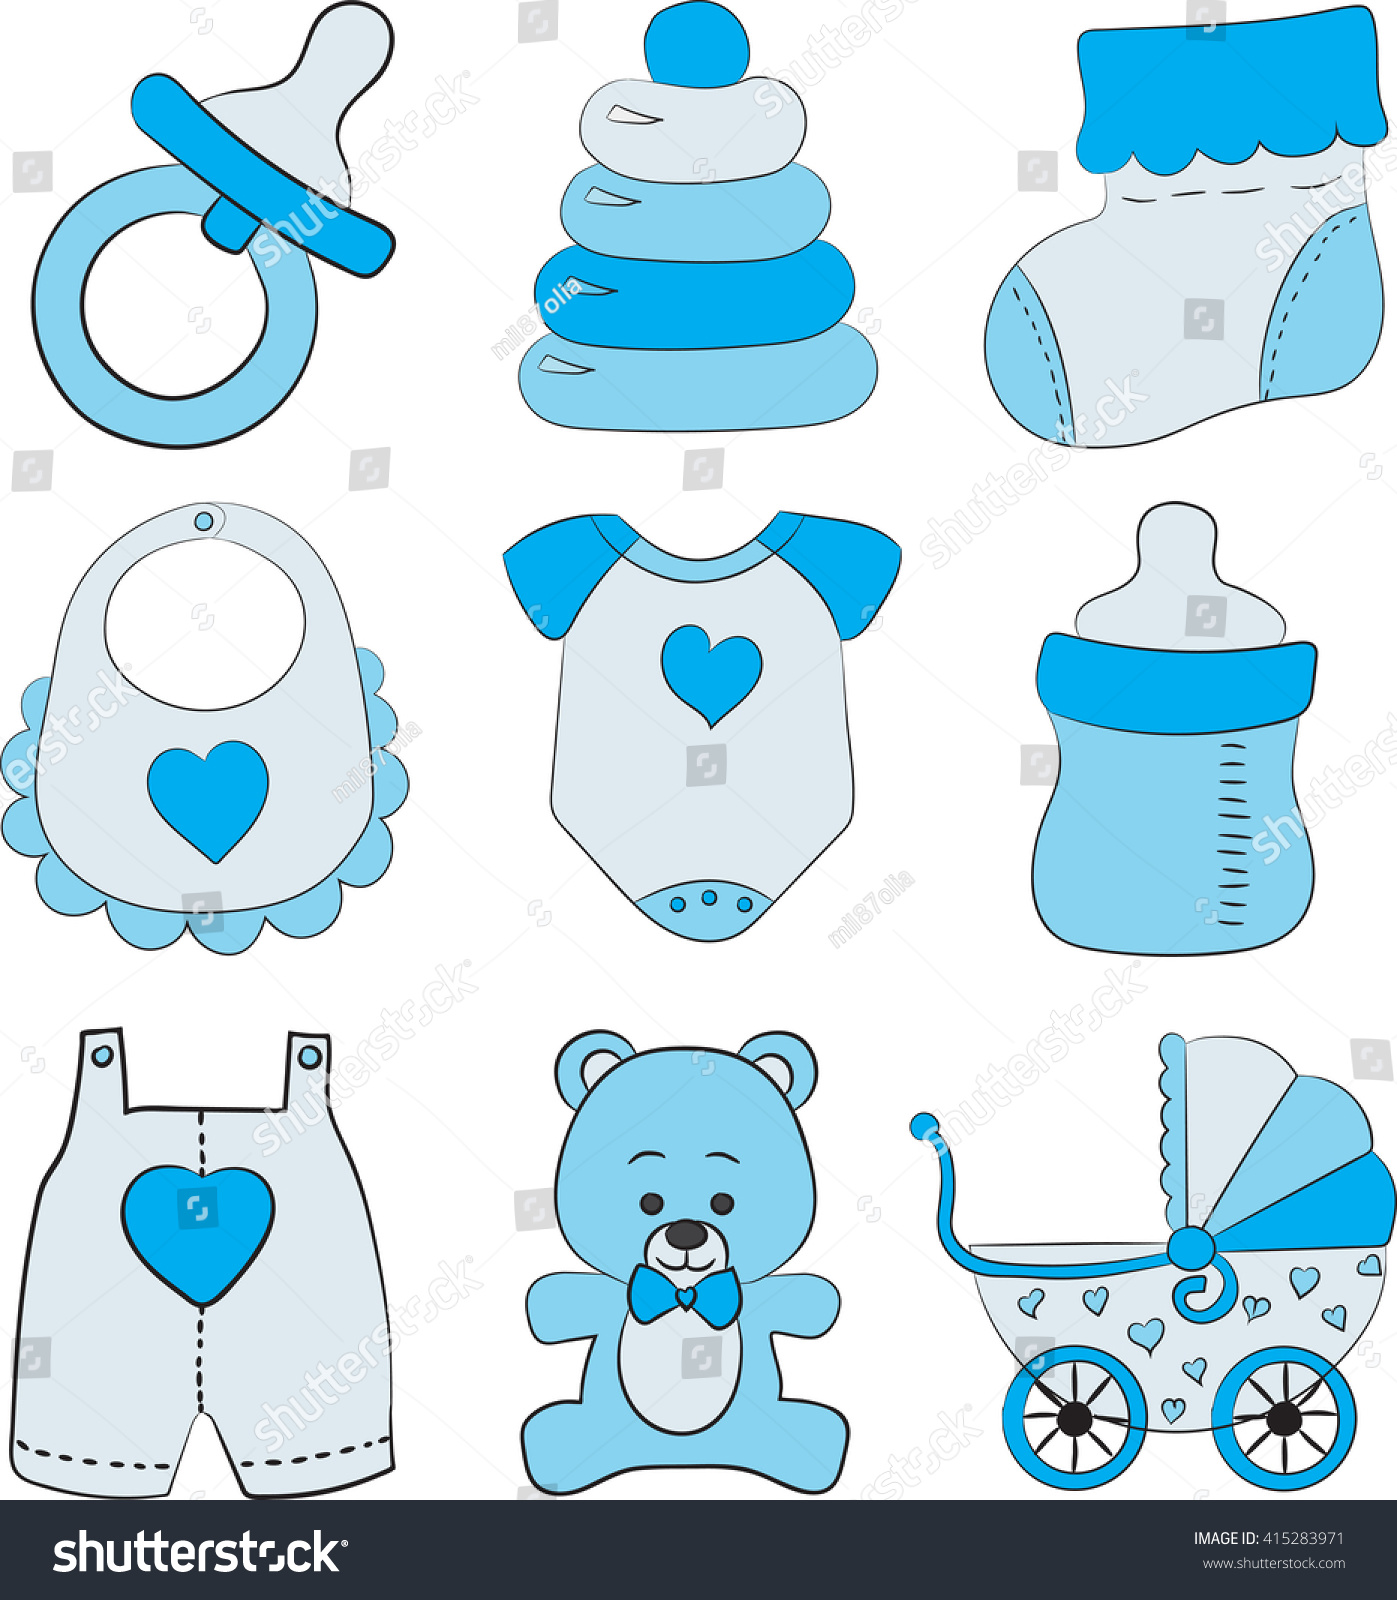 Old Navy Baby Boy Accessories. Dress them in baby boy items from Old Navy for a durable selection of quality accessories. Discover a wide array of baby boy accessories including fleece and cotton hats for everyday wear.